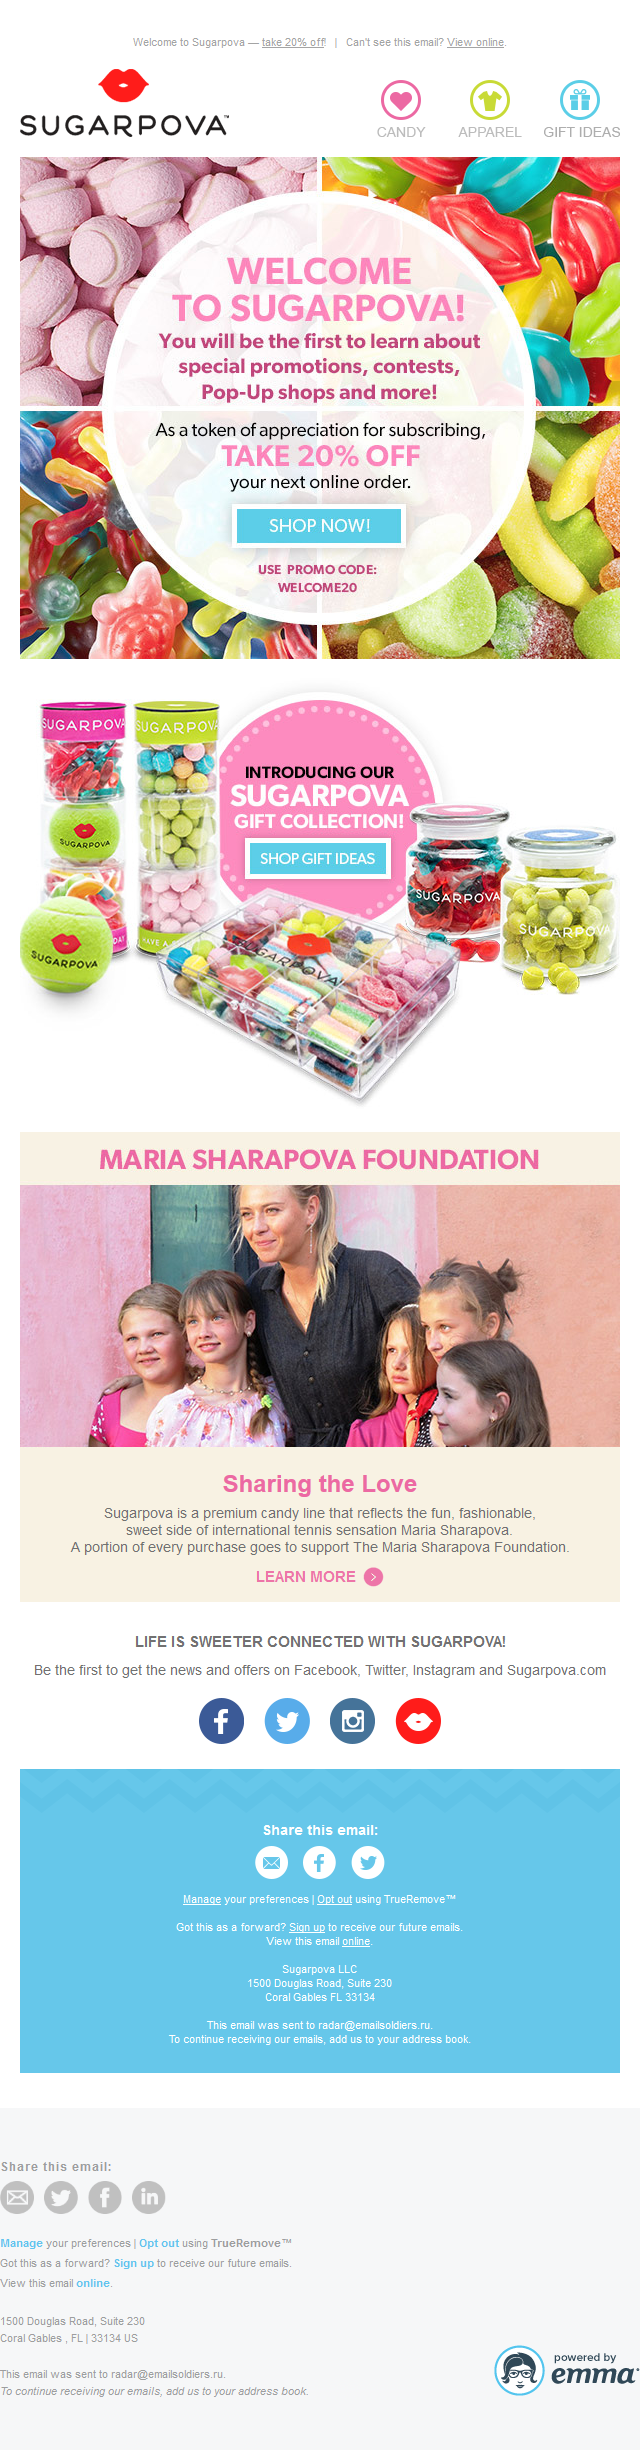 Welcome to Sugarpova! Special Offer Inside!